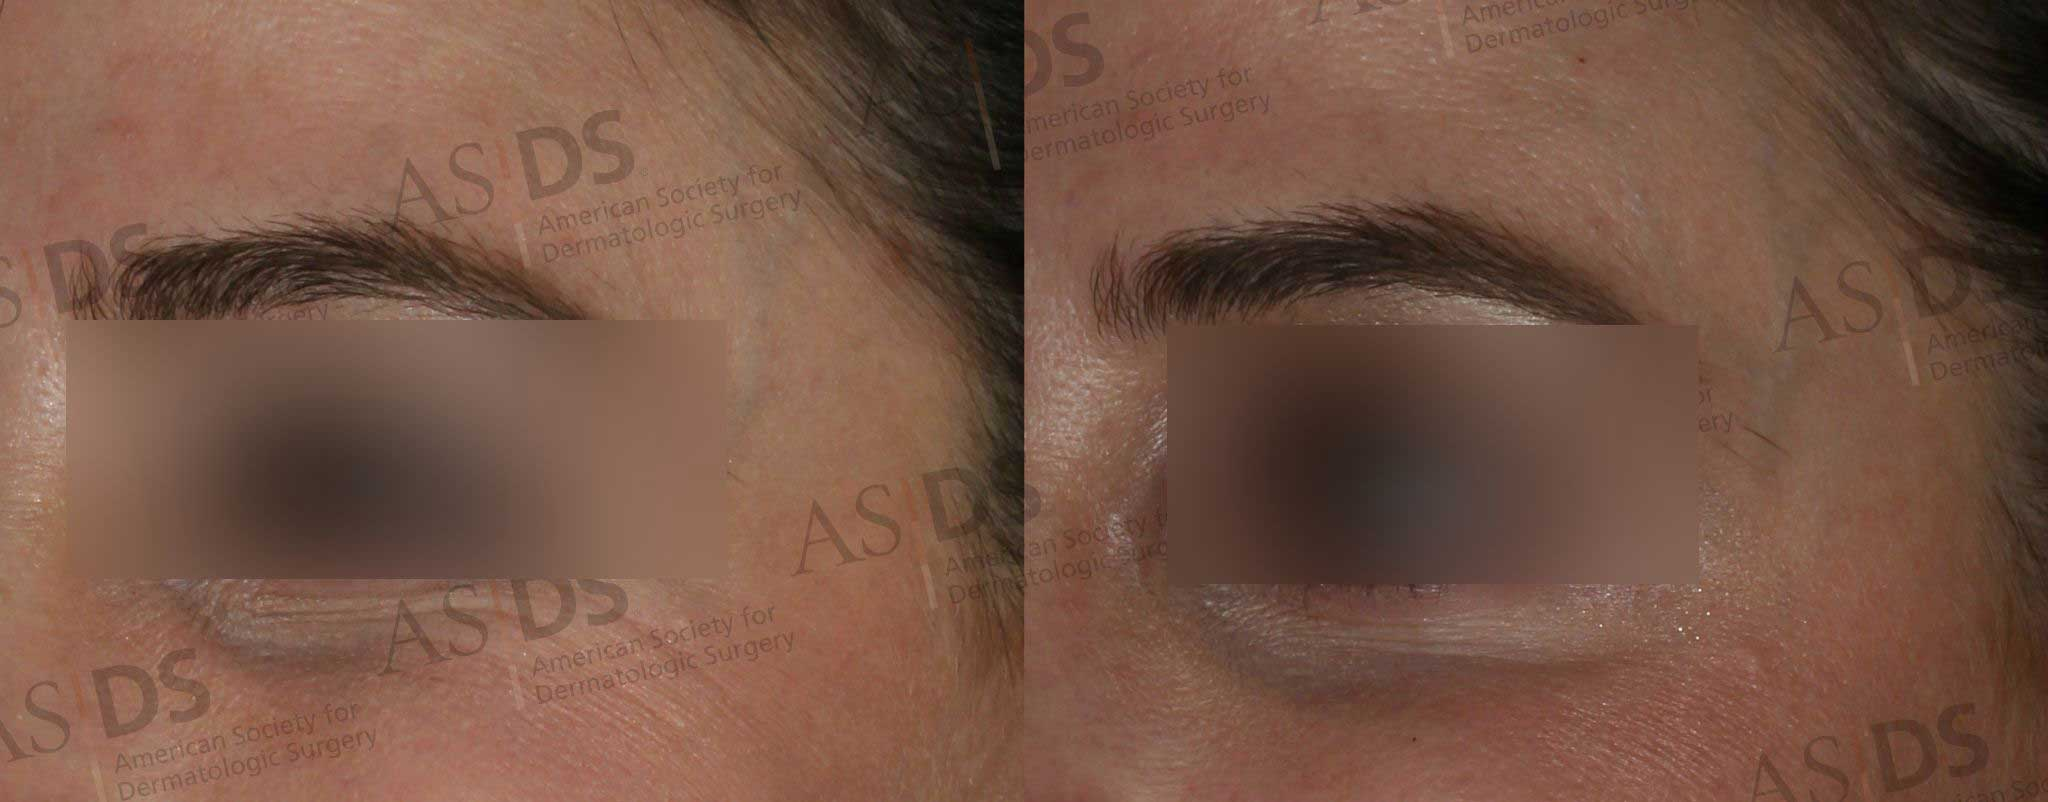 Before (left) and after (right) Crows Feet - Dysport